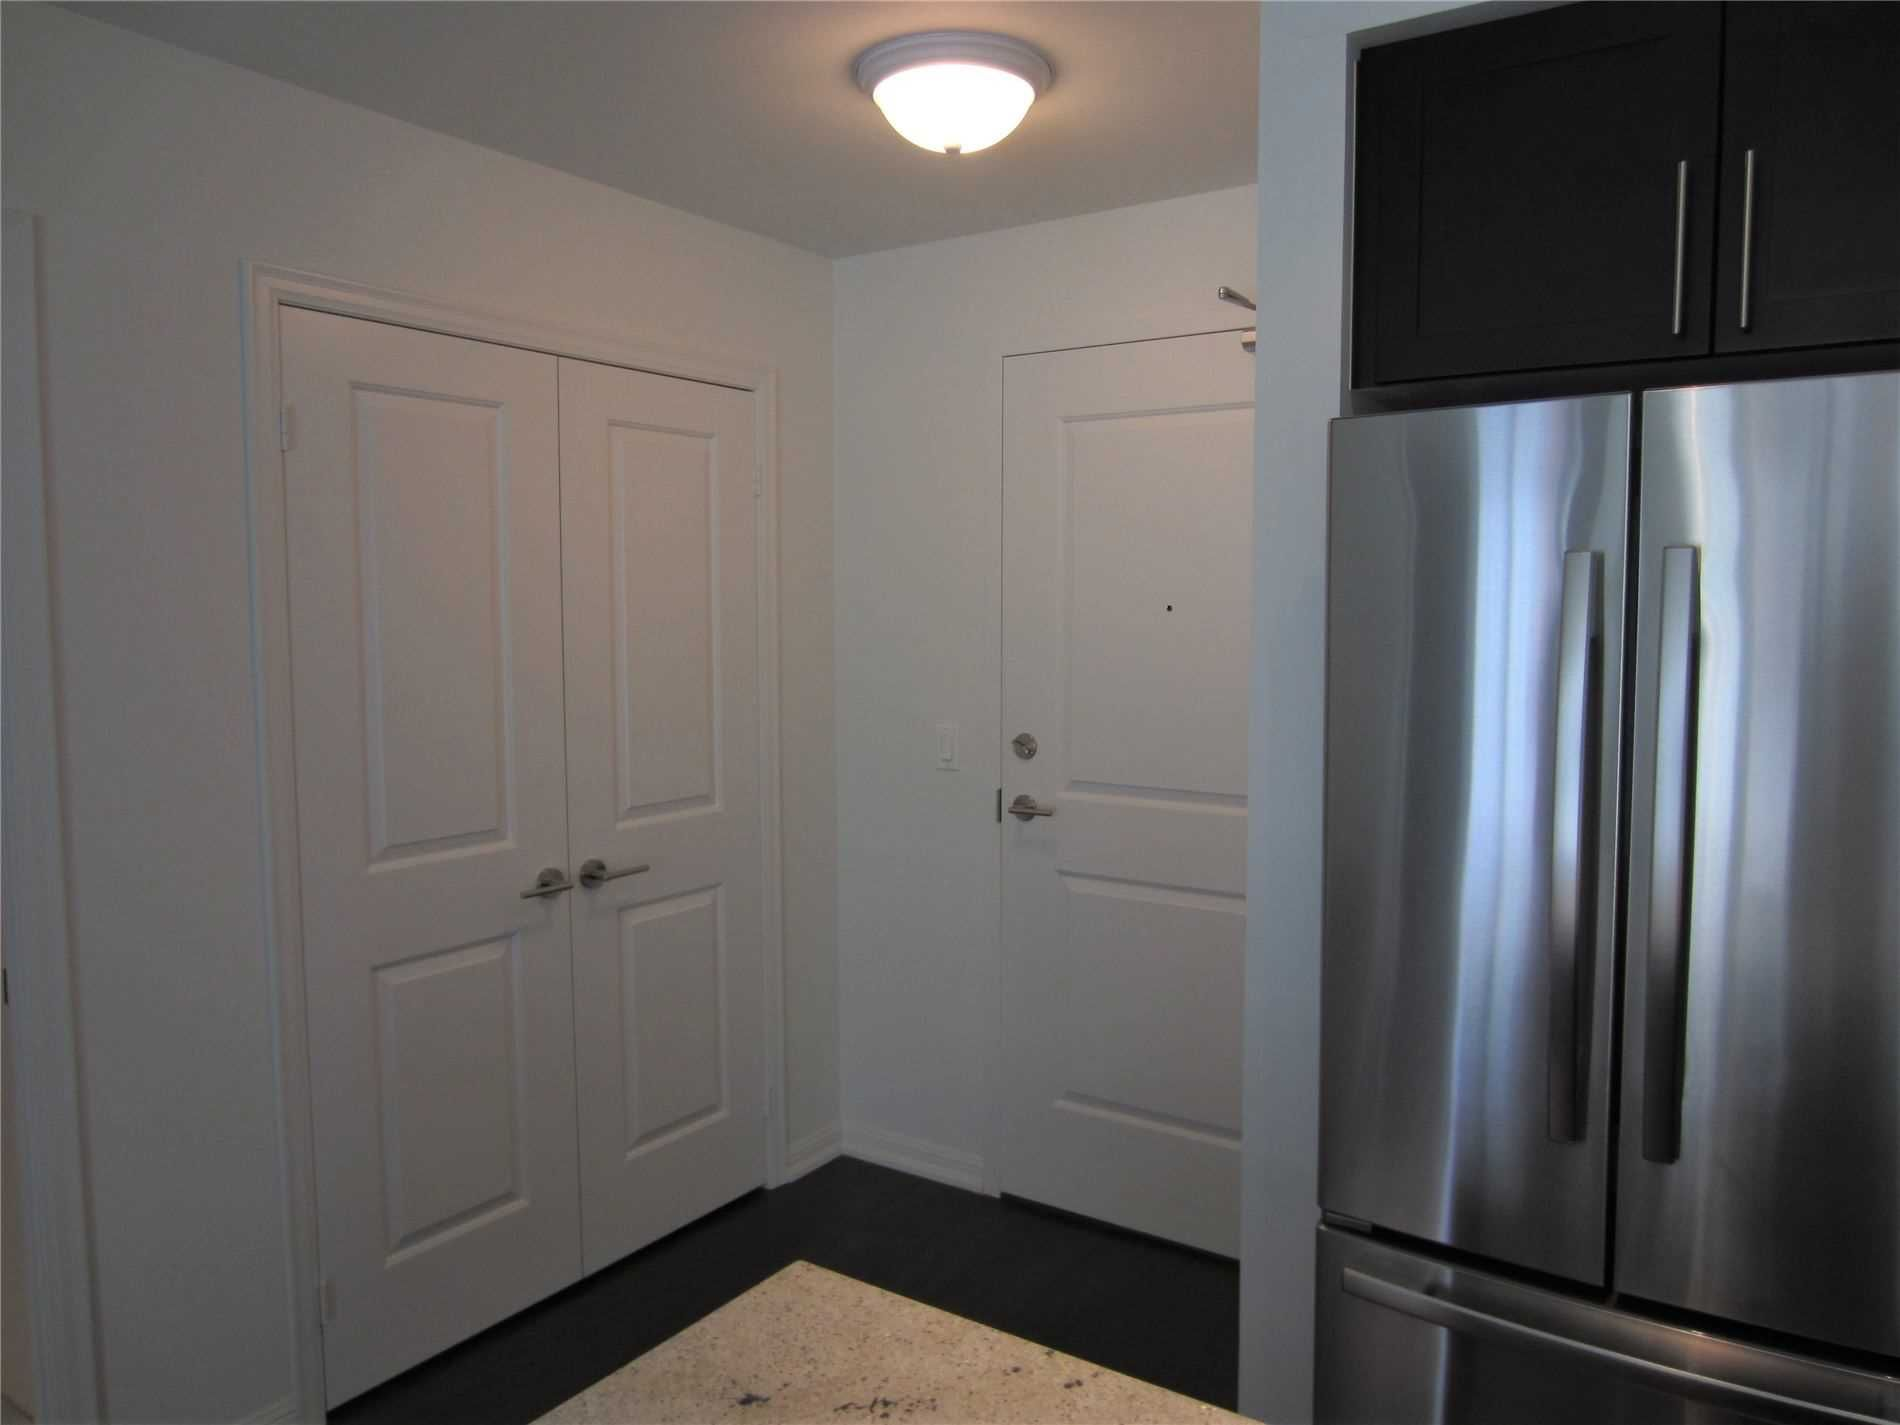 75 East Liberty St, unit 1510 for rent in Toronto - image #2